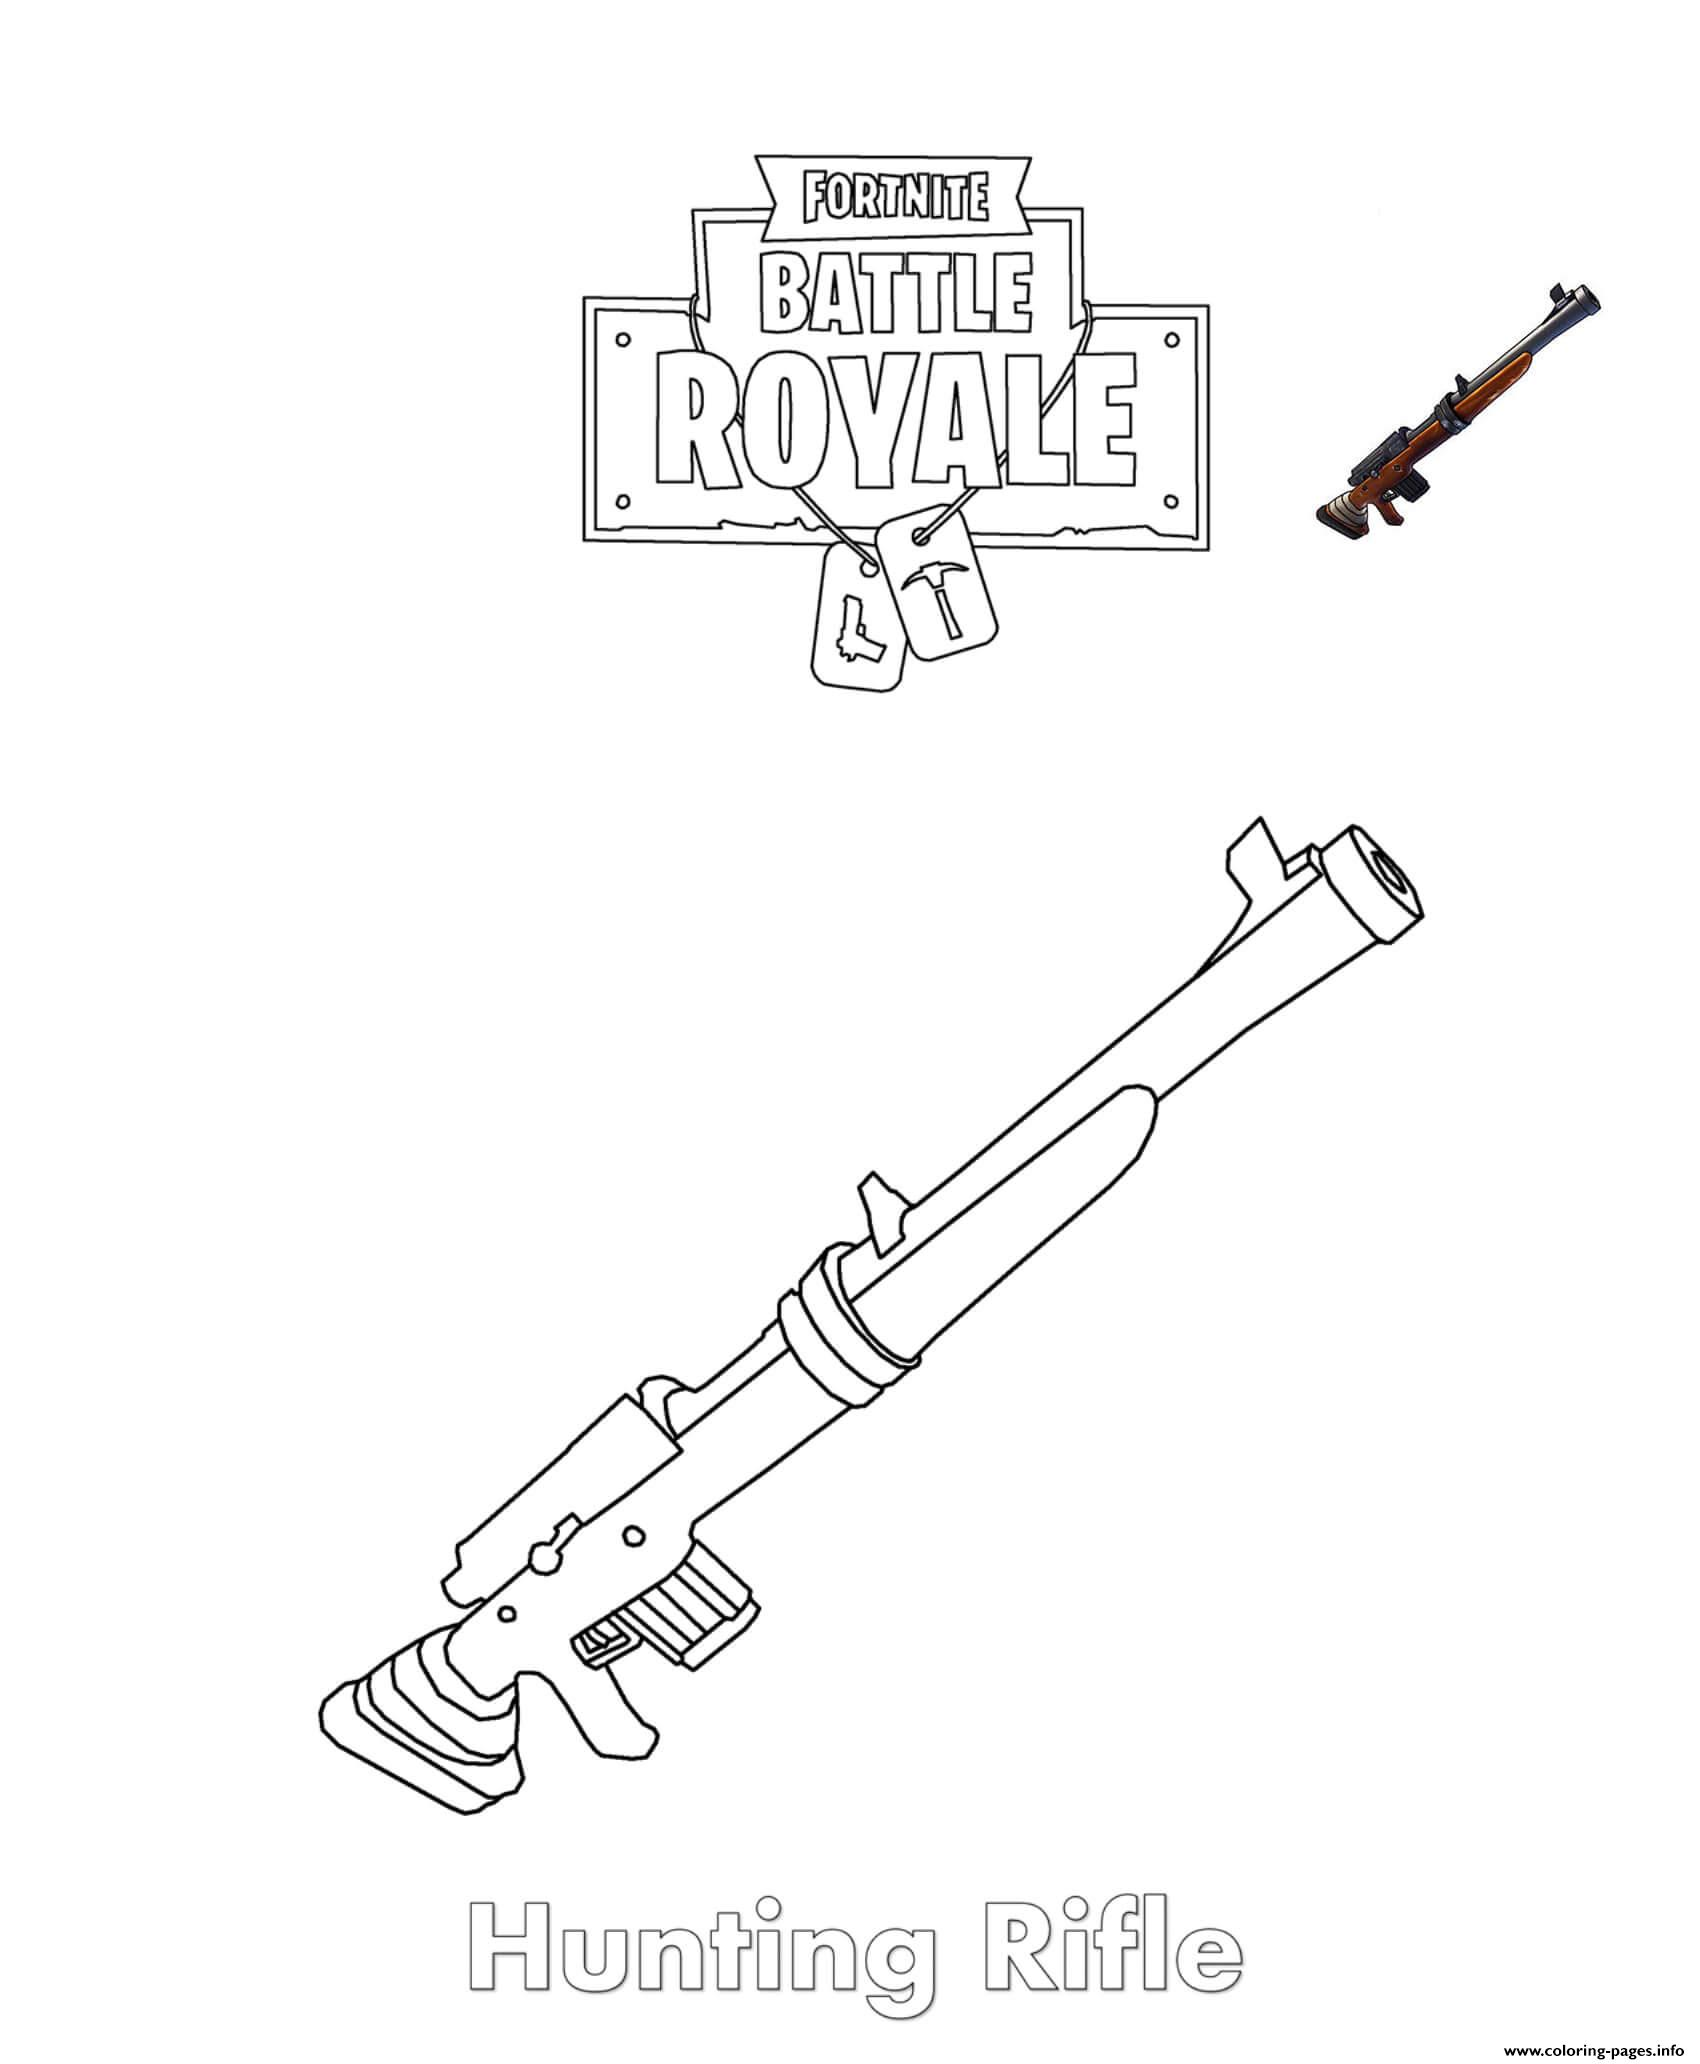 Hunting Rifle Fortnite coloring pages